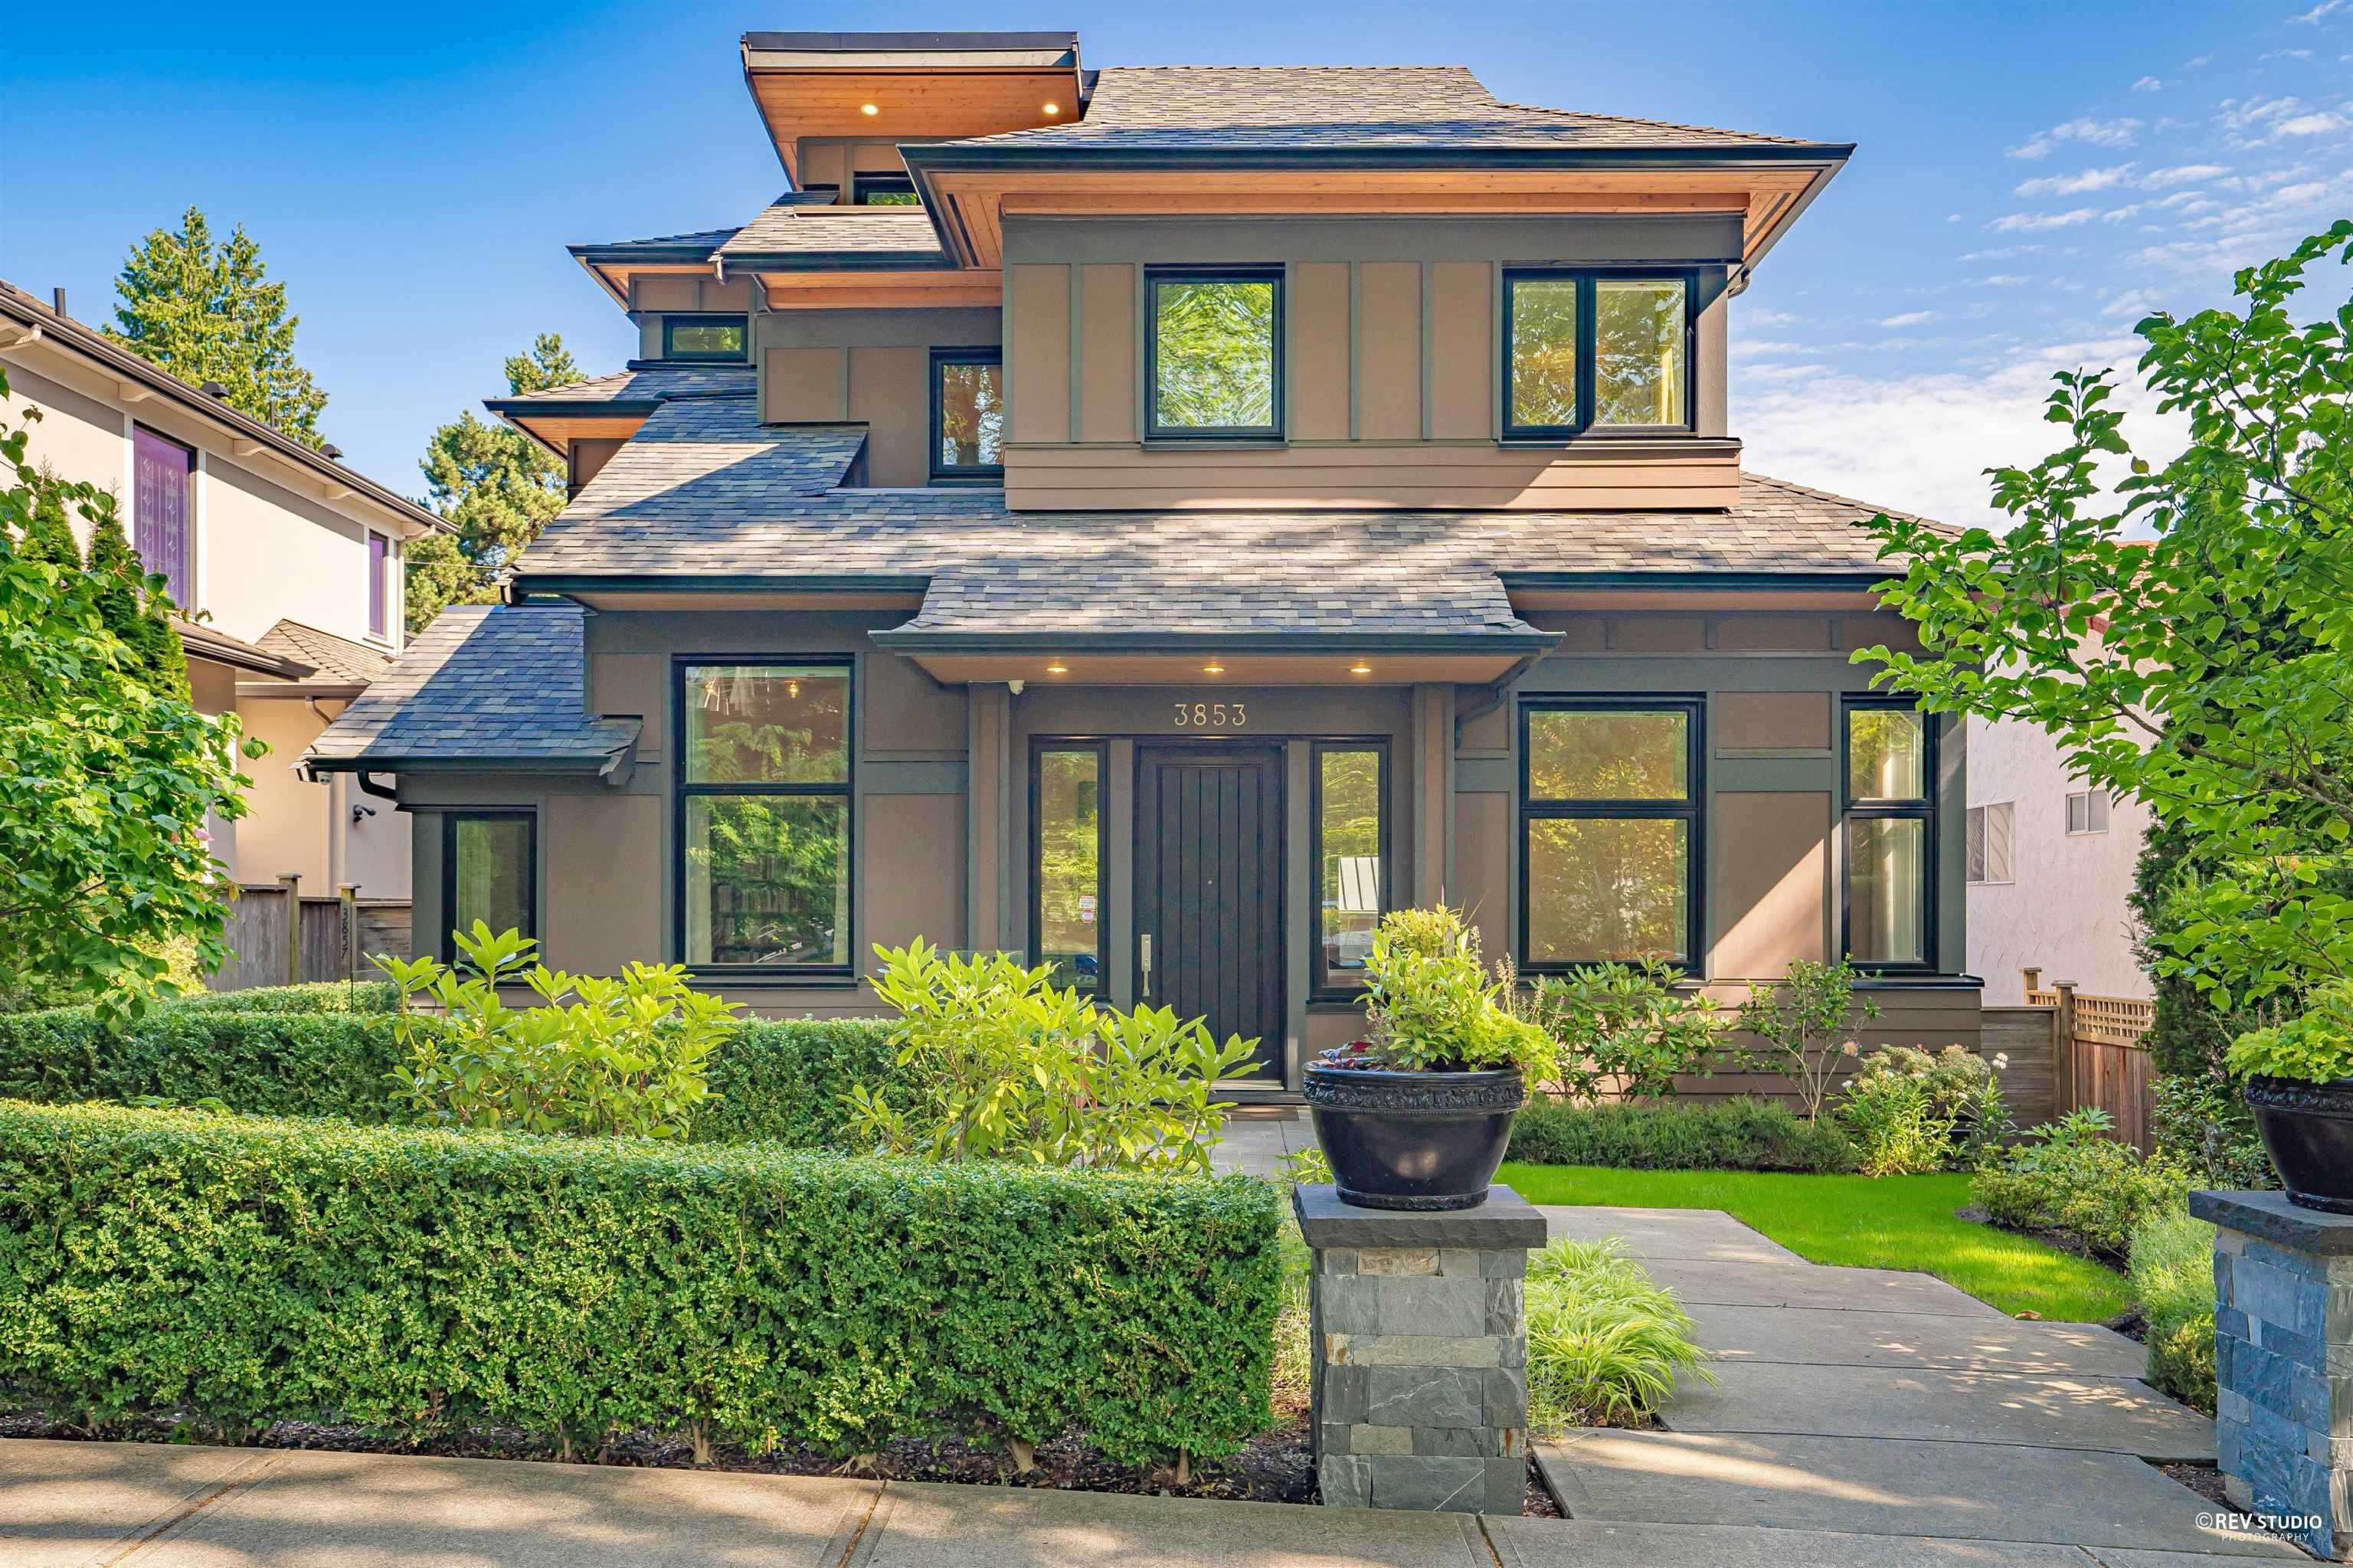 Main Photo: 3853 W 14TH Avenue in Vancouver: Point Grey House for sale (Vancouver West)  : MLS®# R2617755